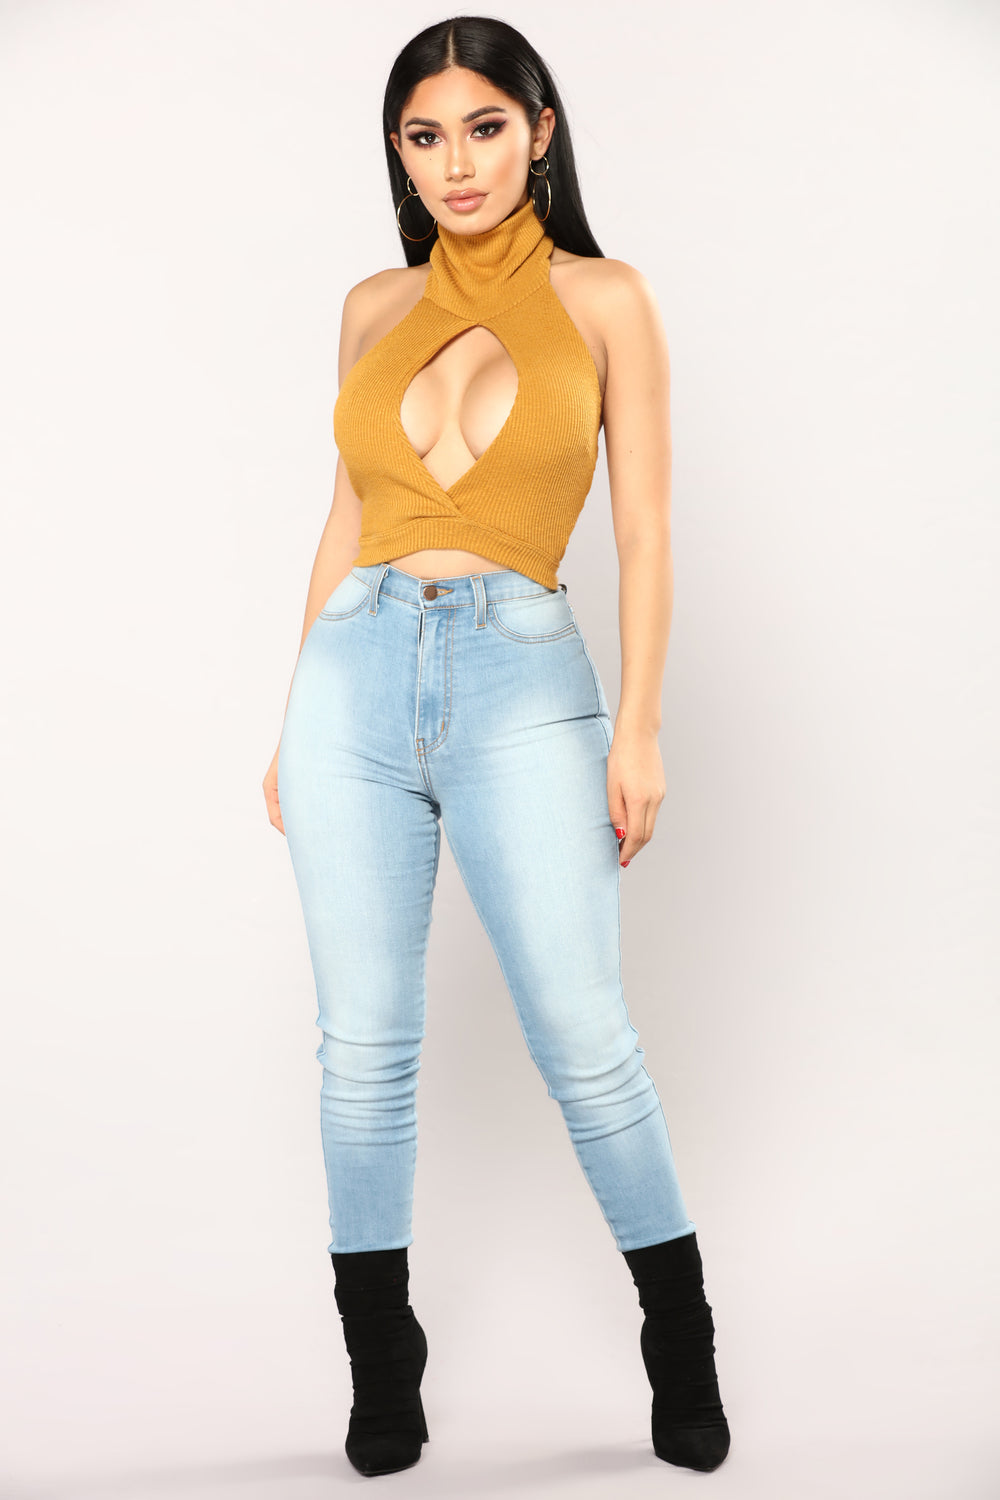 Simple Love Turtle Neck Top - Mustard